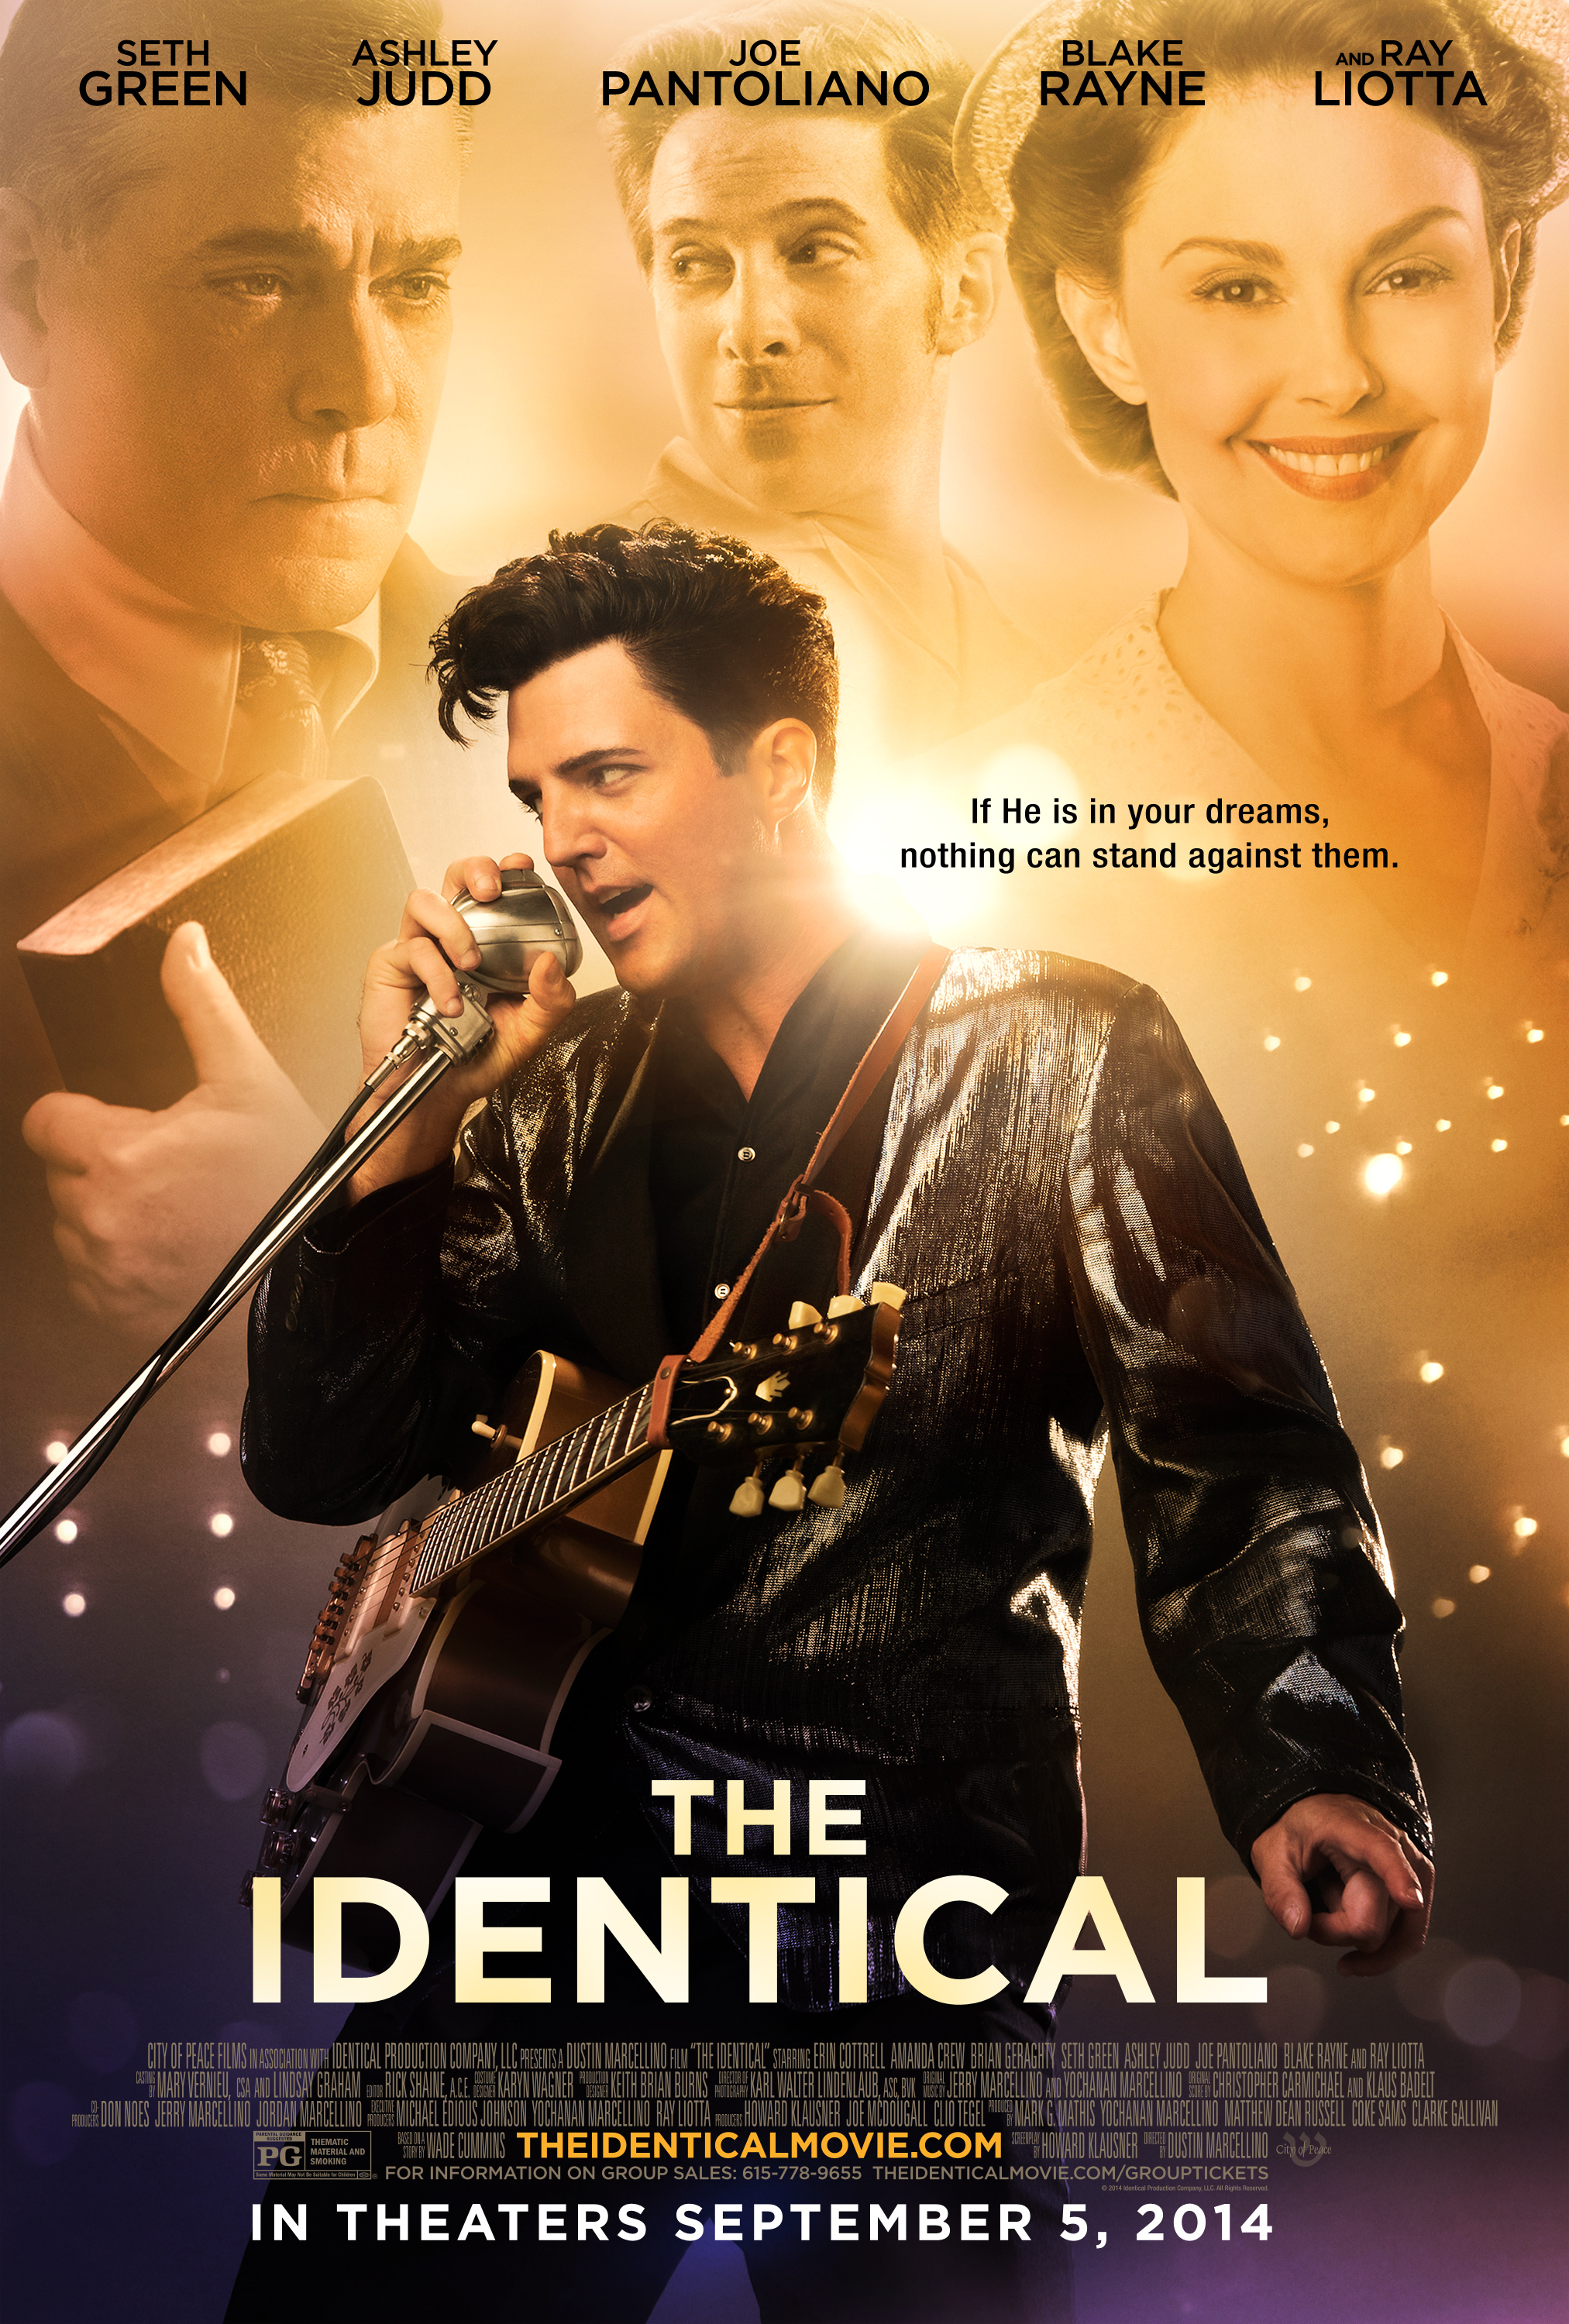 the identical movie